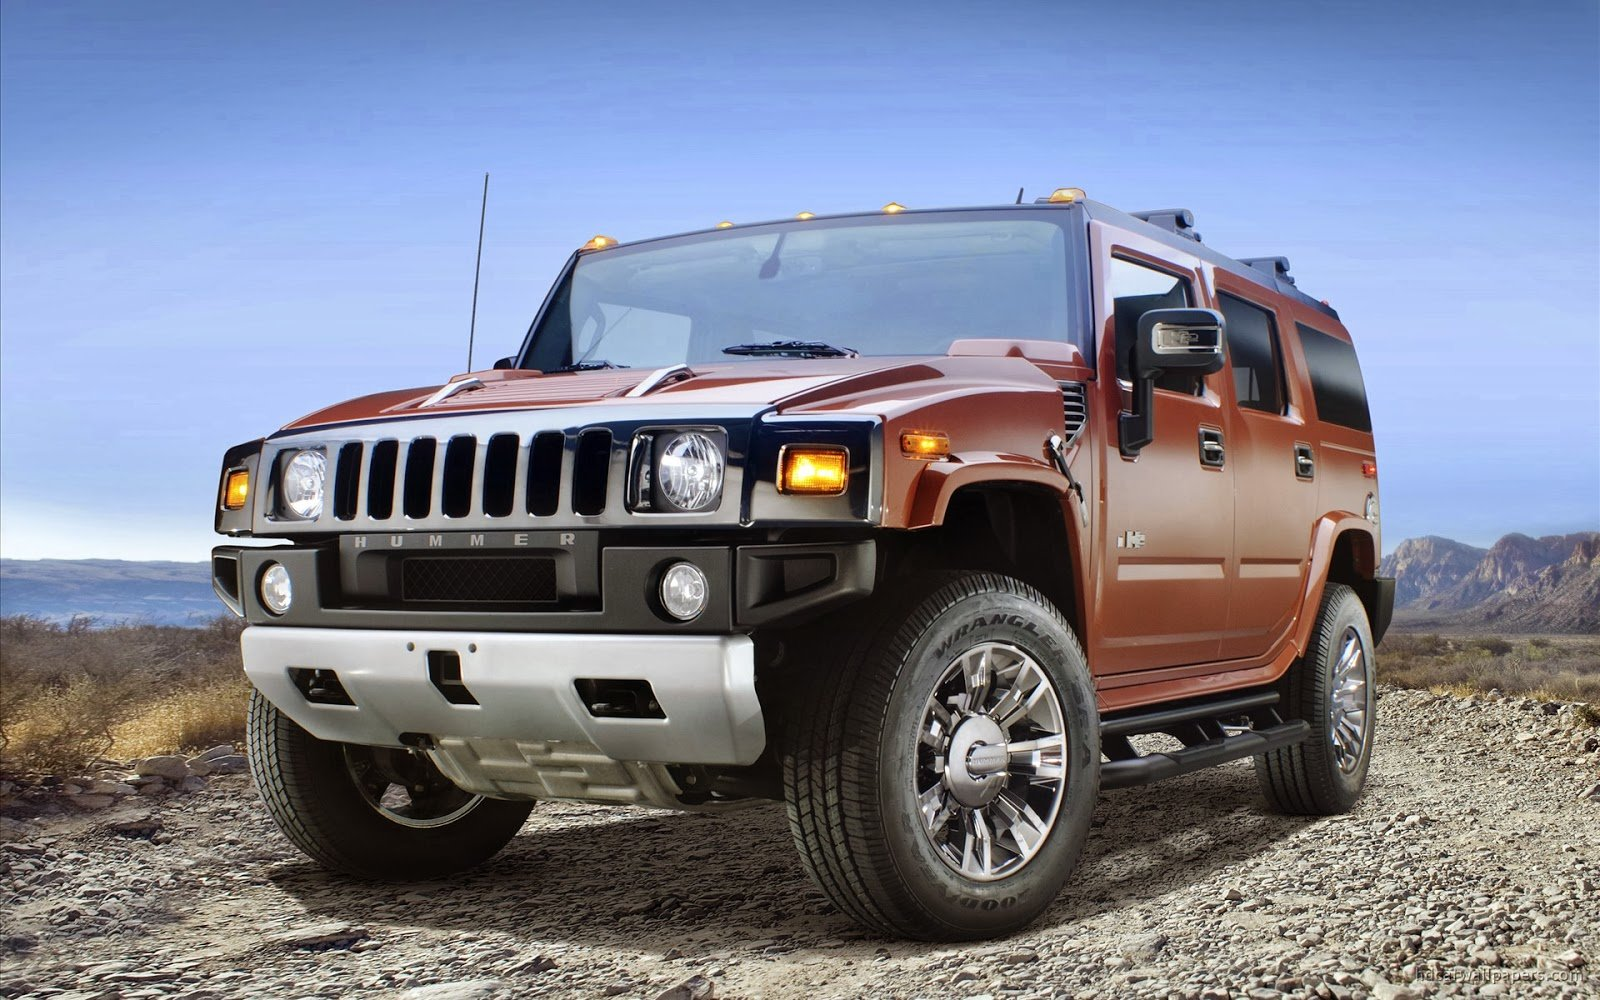 New Hummer Cars General Motor Hd Car Wallpaper On This Month